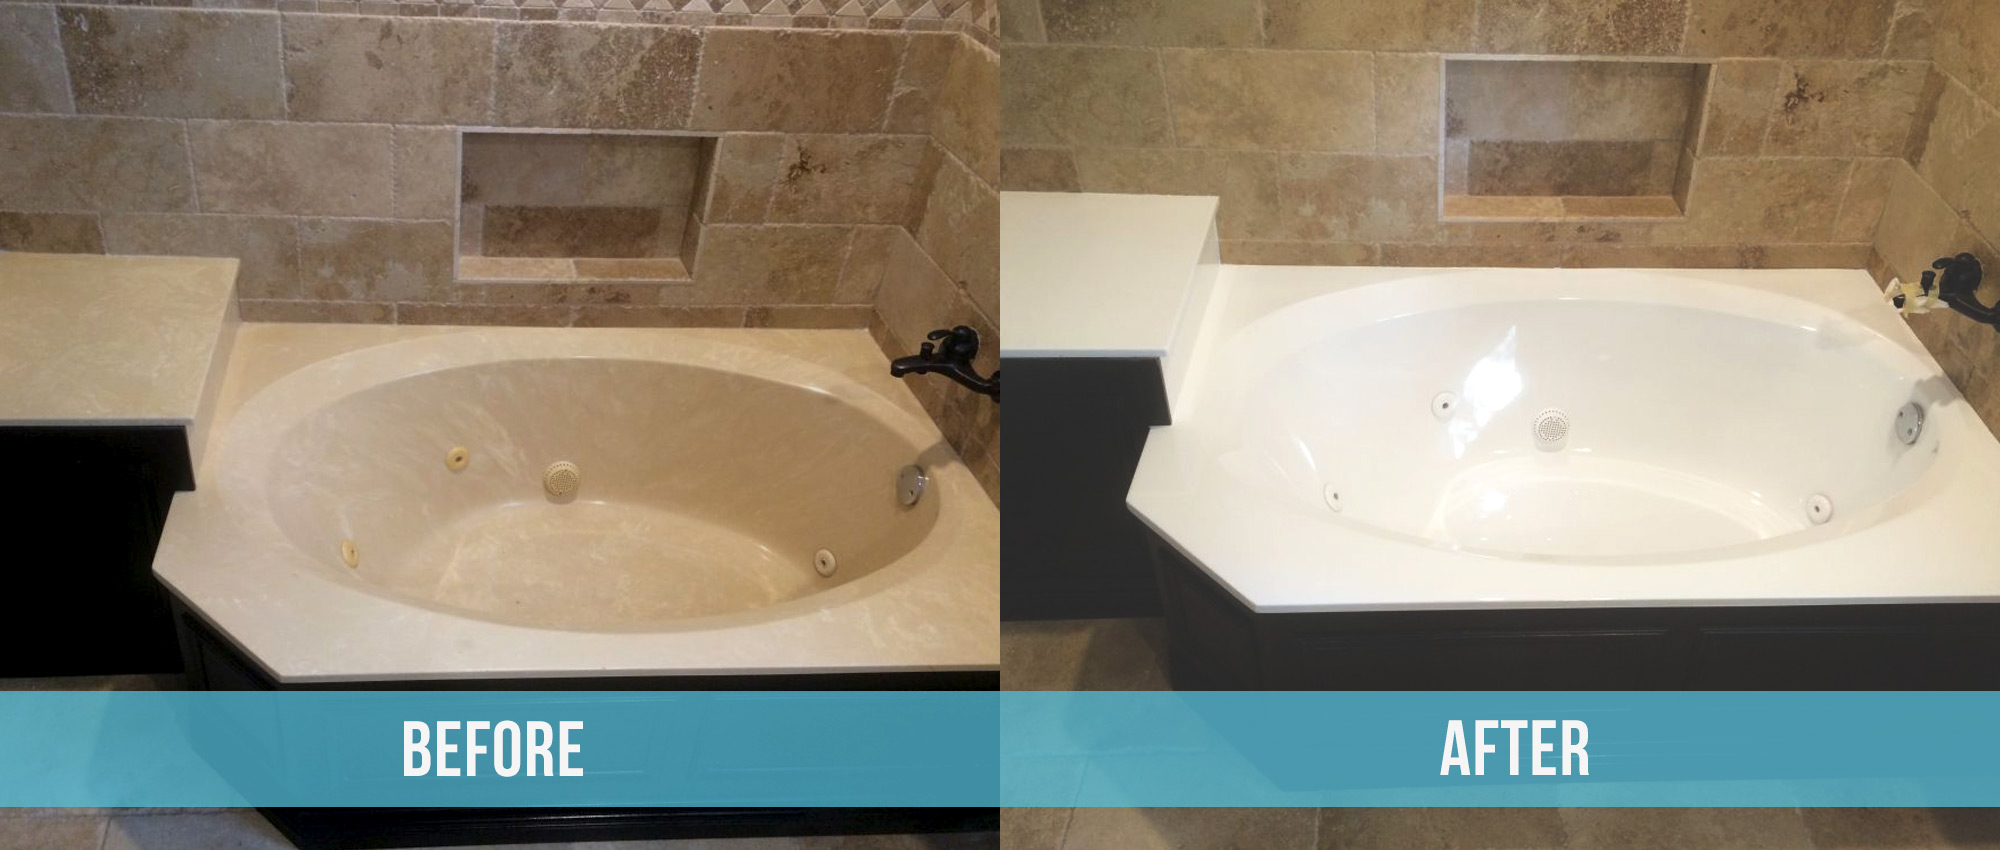 Professional Tub Refinishing Florida Bathtub Refinishing